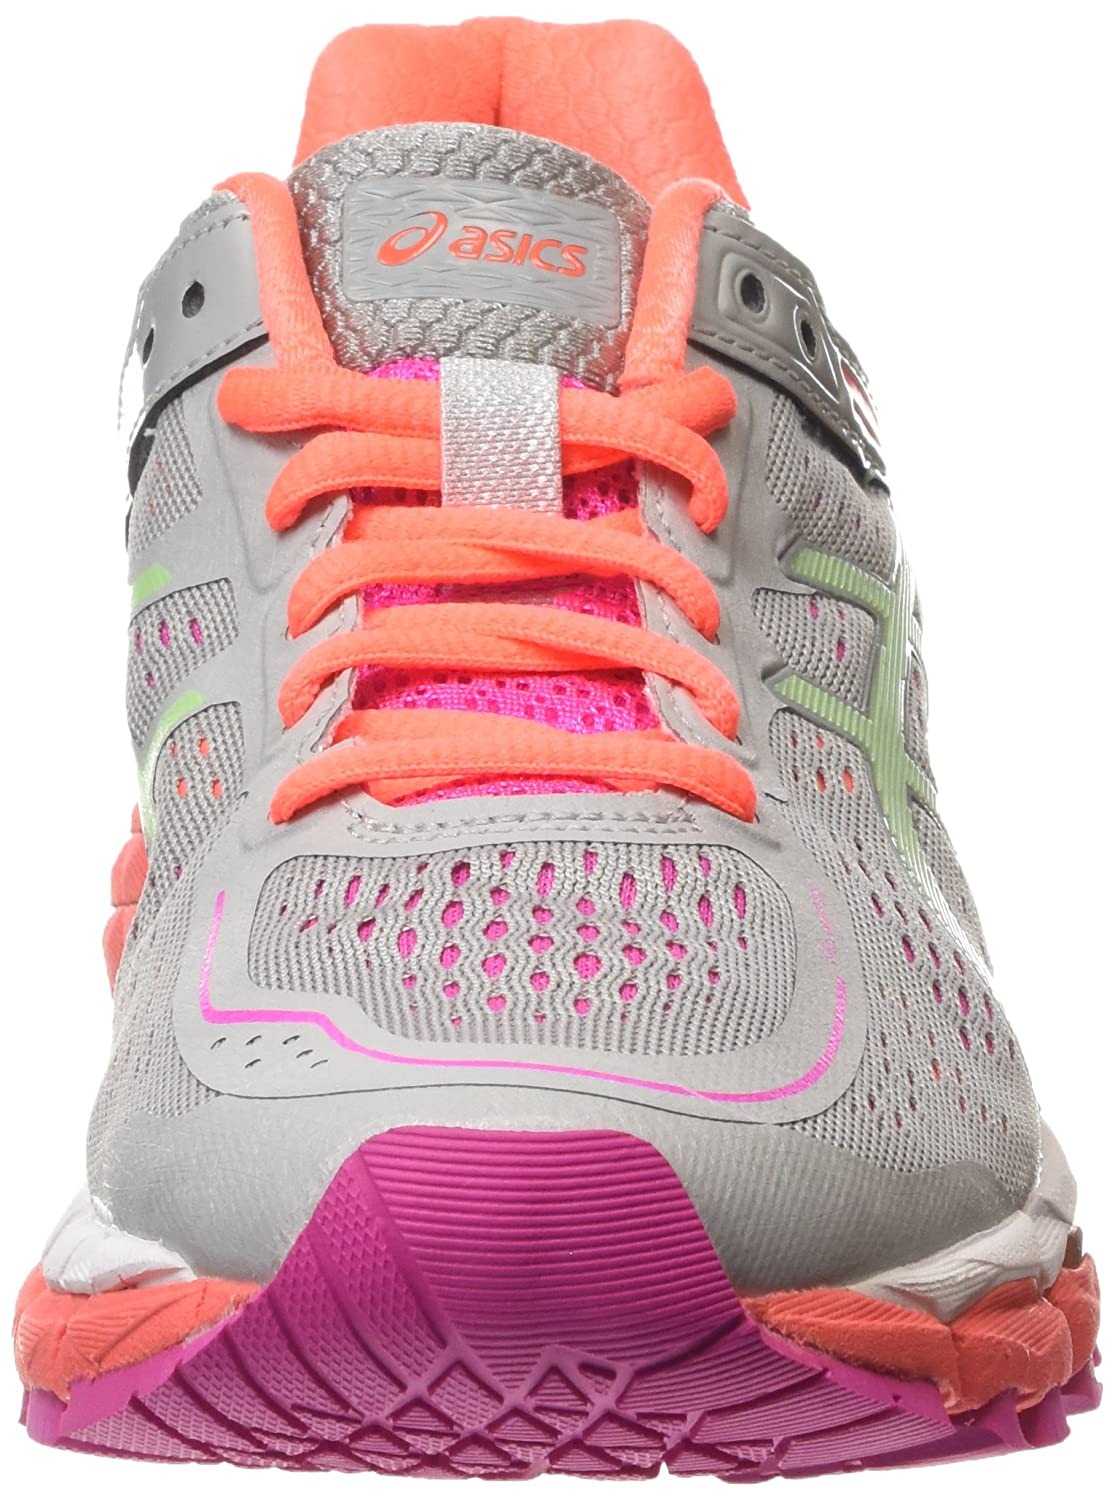 Amazon.com | Asics Gel Kayano 22 Running Shoes grey/colorful, EU Shoe Size:36 EU | Shoes